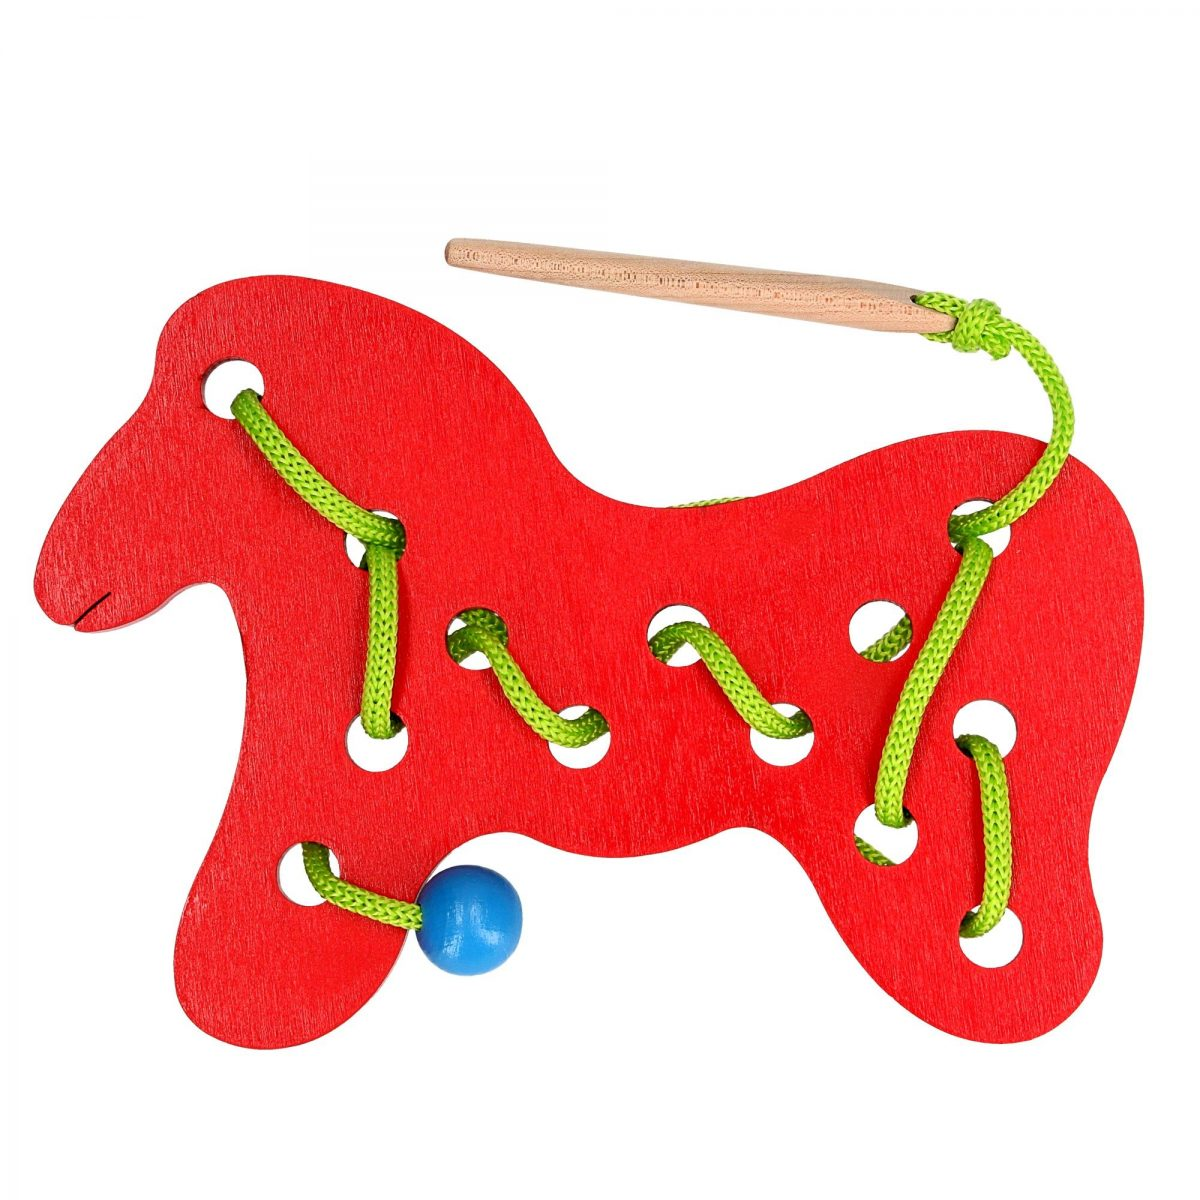 wooden horse lacing toy large size bright for babies and toddlers